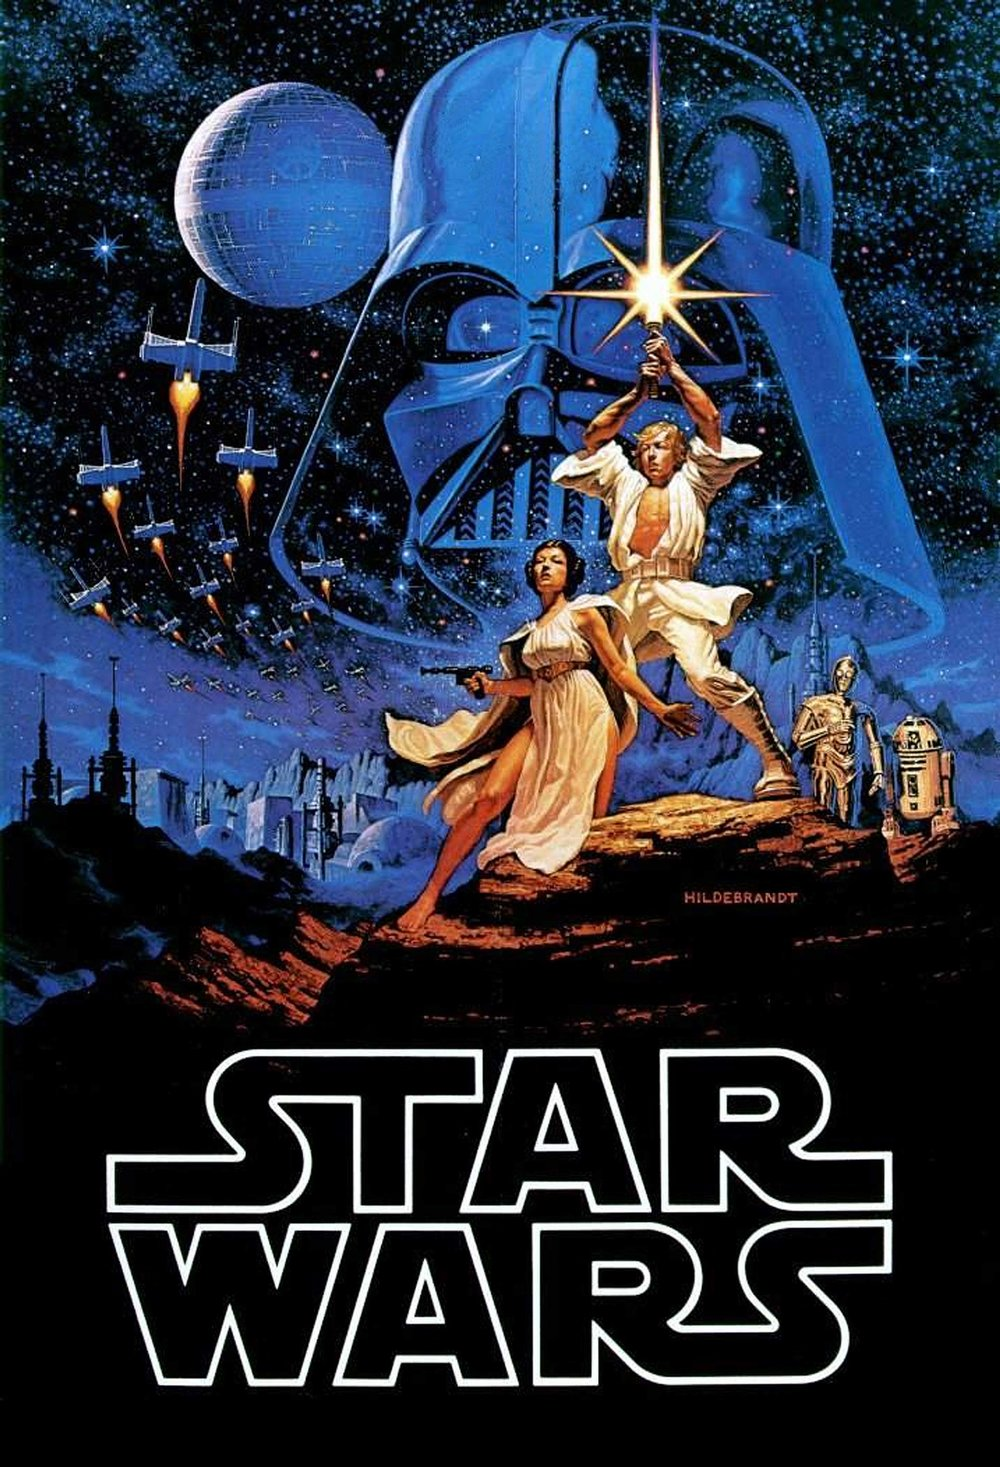 star-wars-a-new-hope-episode-iv-original-poster-art-1977-style-a-brothers-hildebrandt.jpg